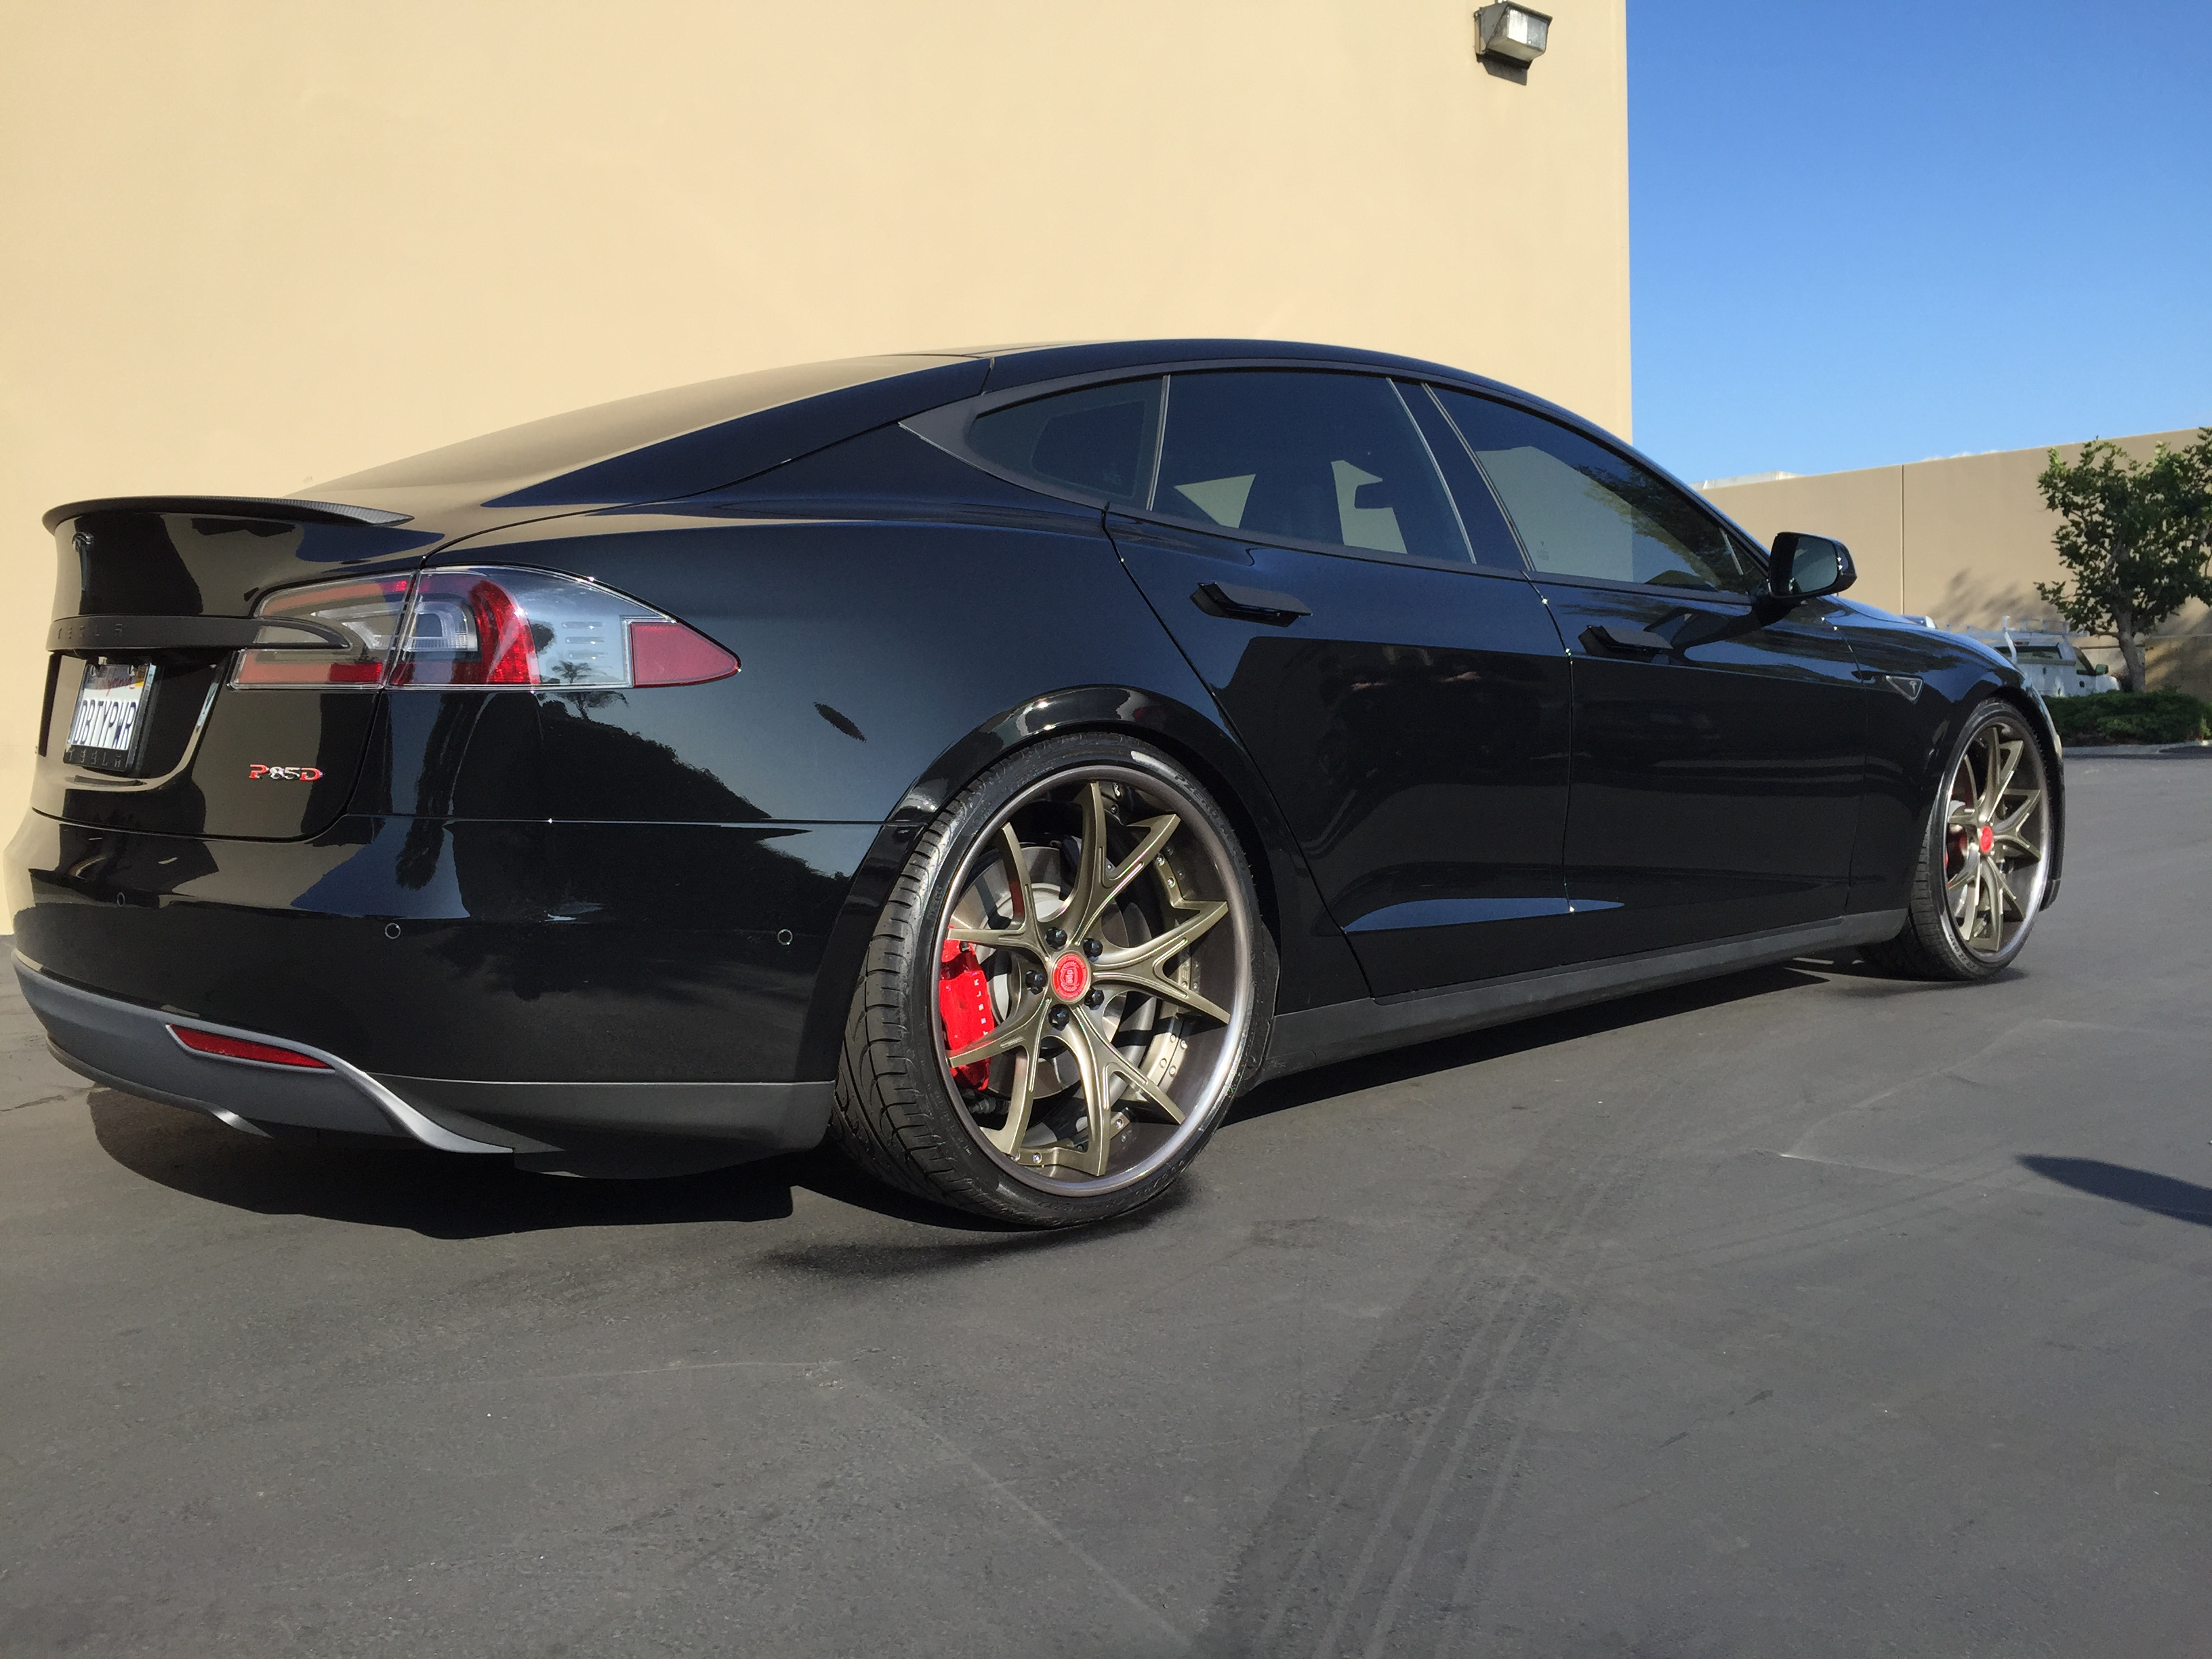 tesla model s custom wheels dpe es5 22x9 5 et tire size. Black Bedroom Furniture Sets. Home Design Ideas